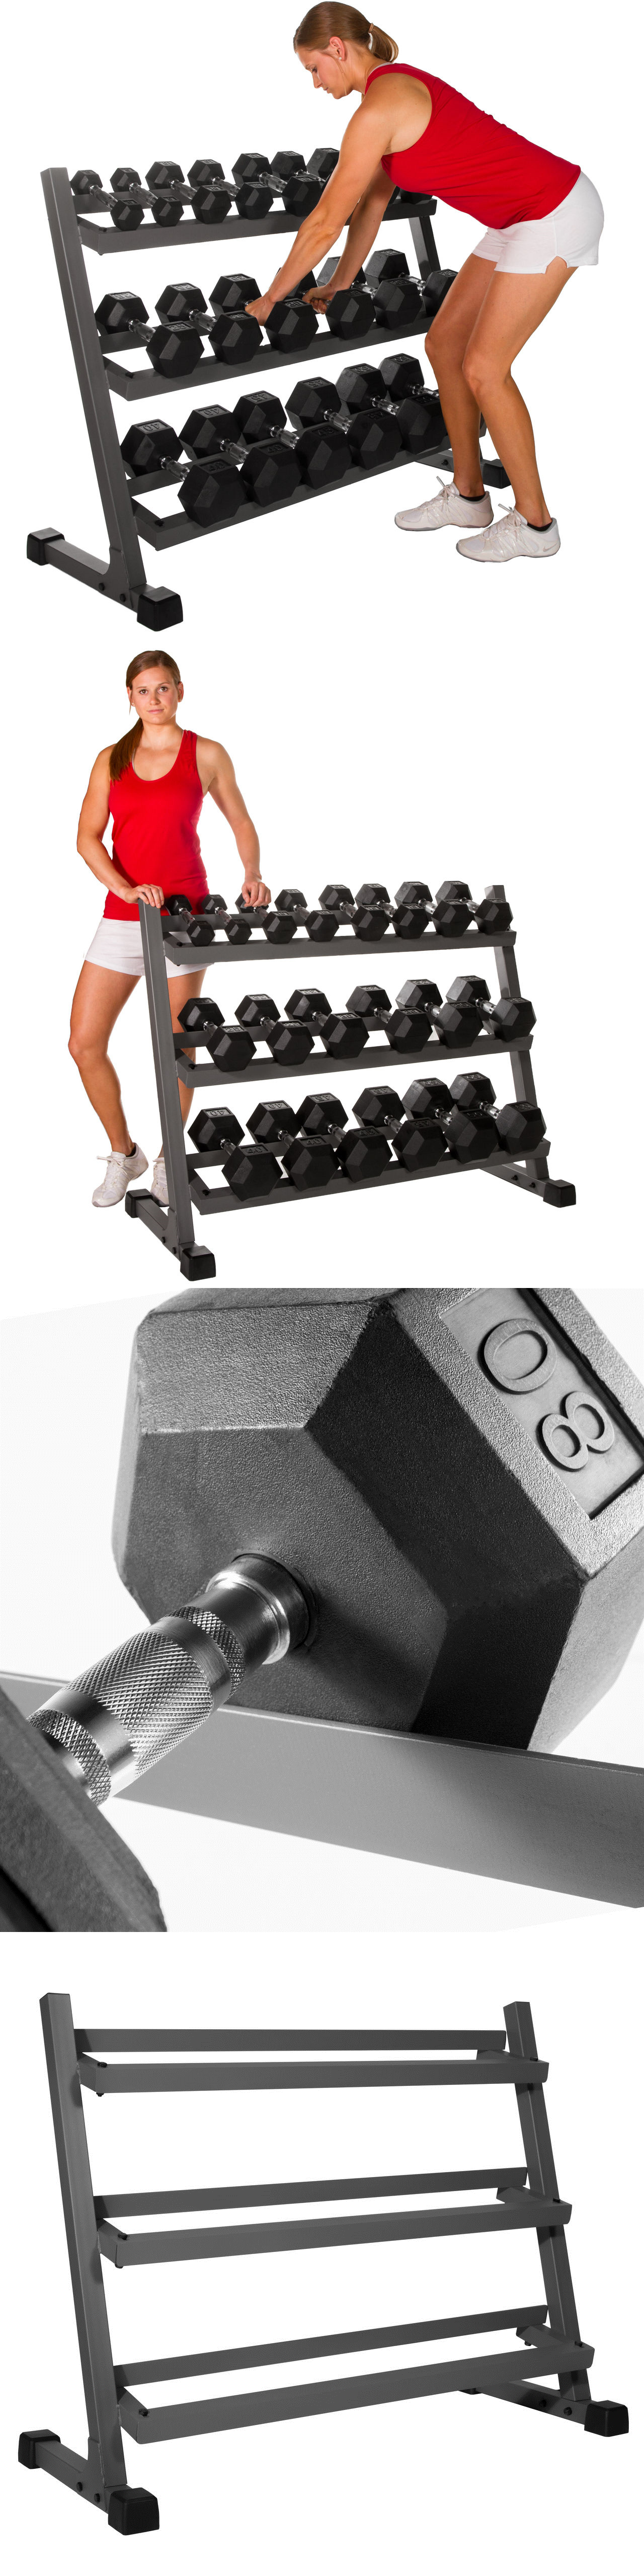 weight vertical rack youtube storage watch hanging make how a to barbell